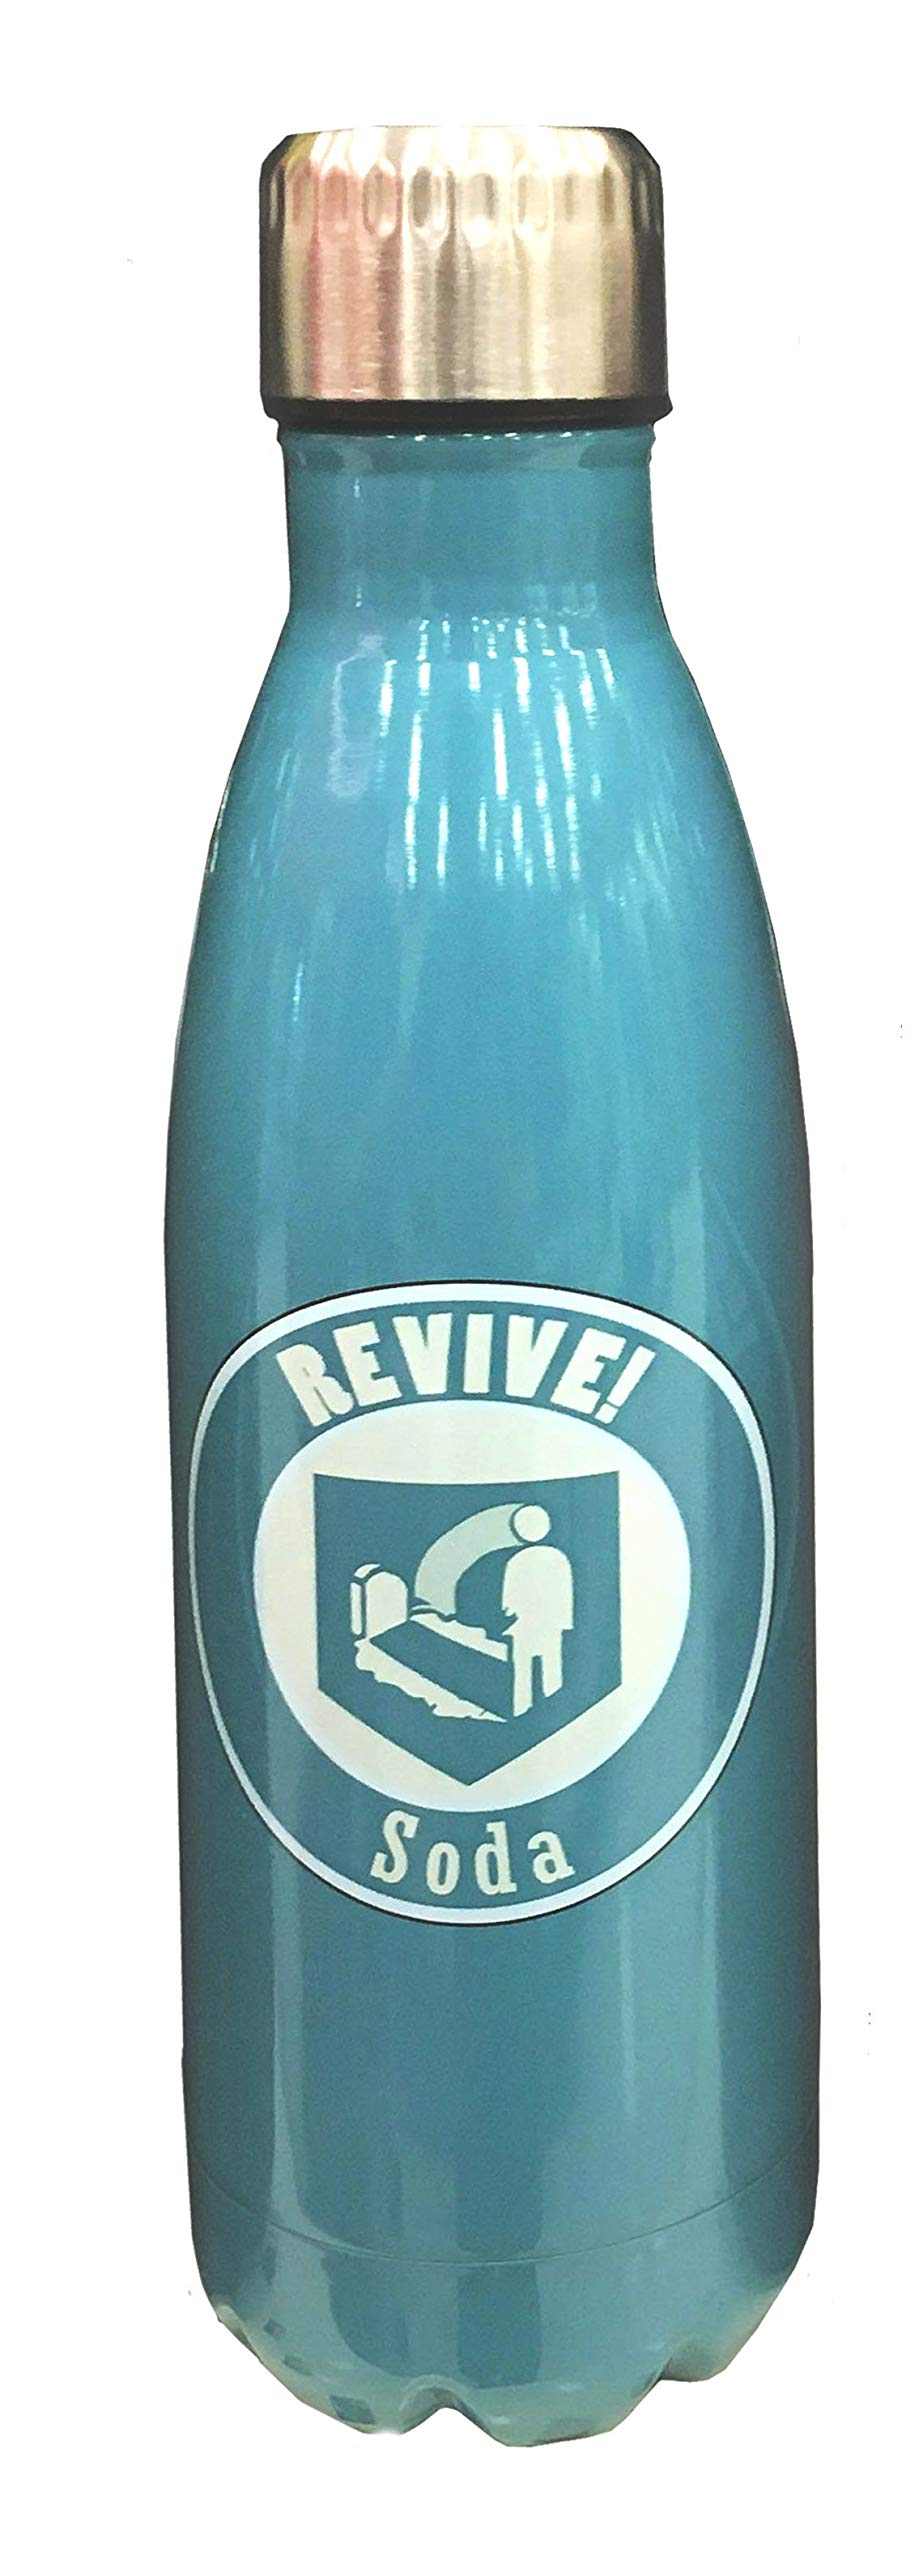 Call of Duty Perks Insulated Stainless Steel 16 Ounces Water Bottle (Revive)